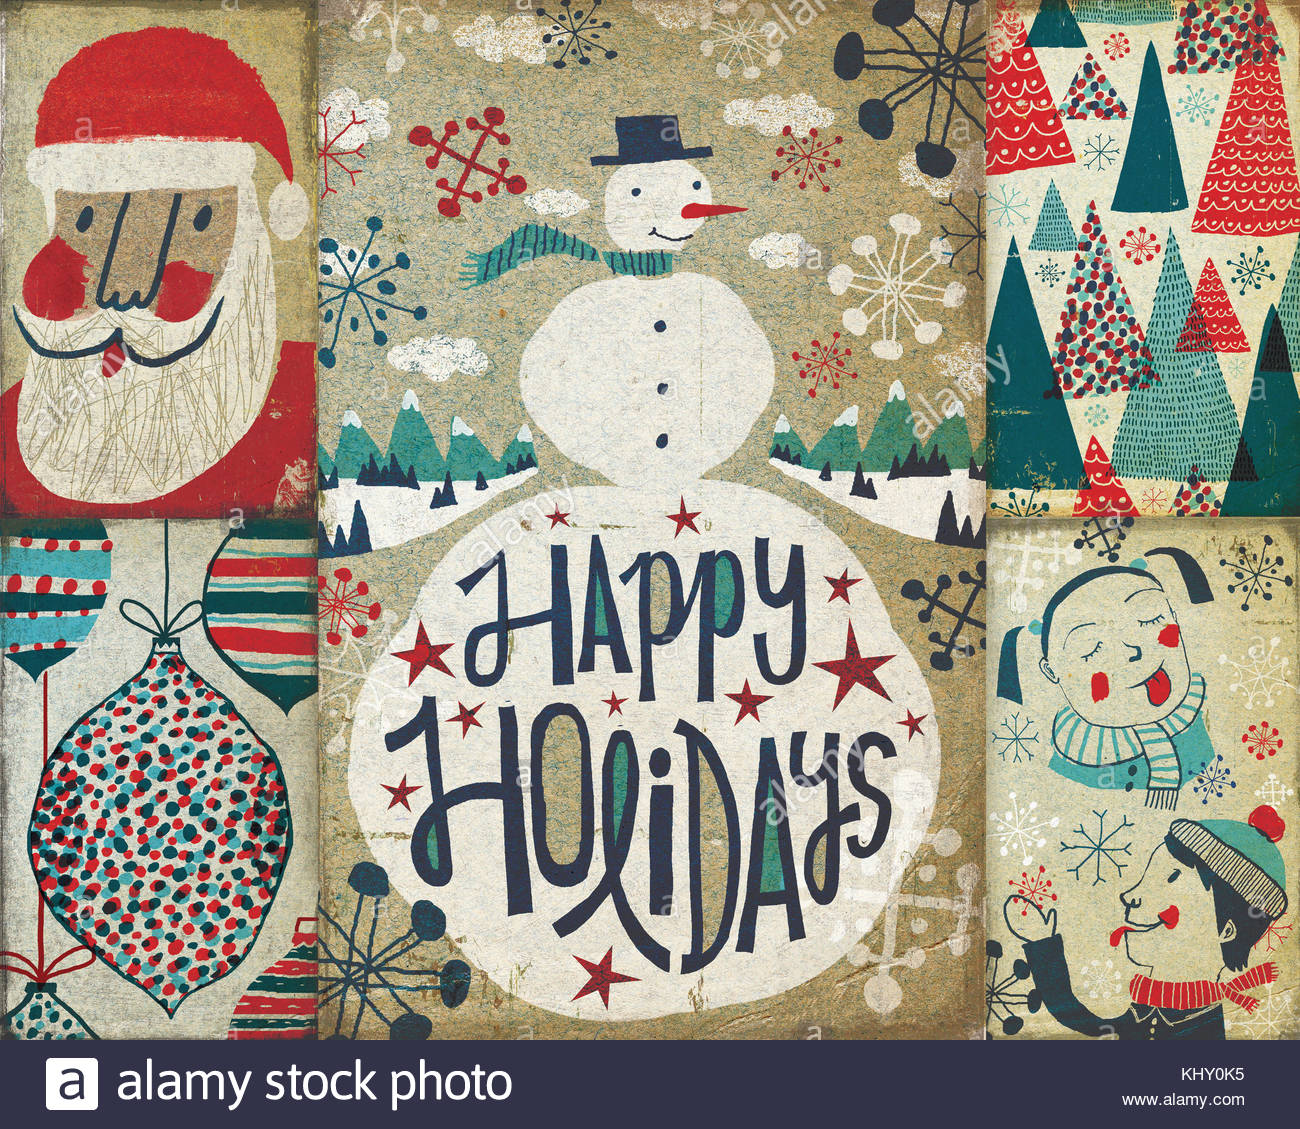 Montage of old-fashioned Christmas cards Stock Photo: 165935705 - Alamy